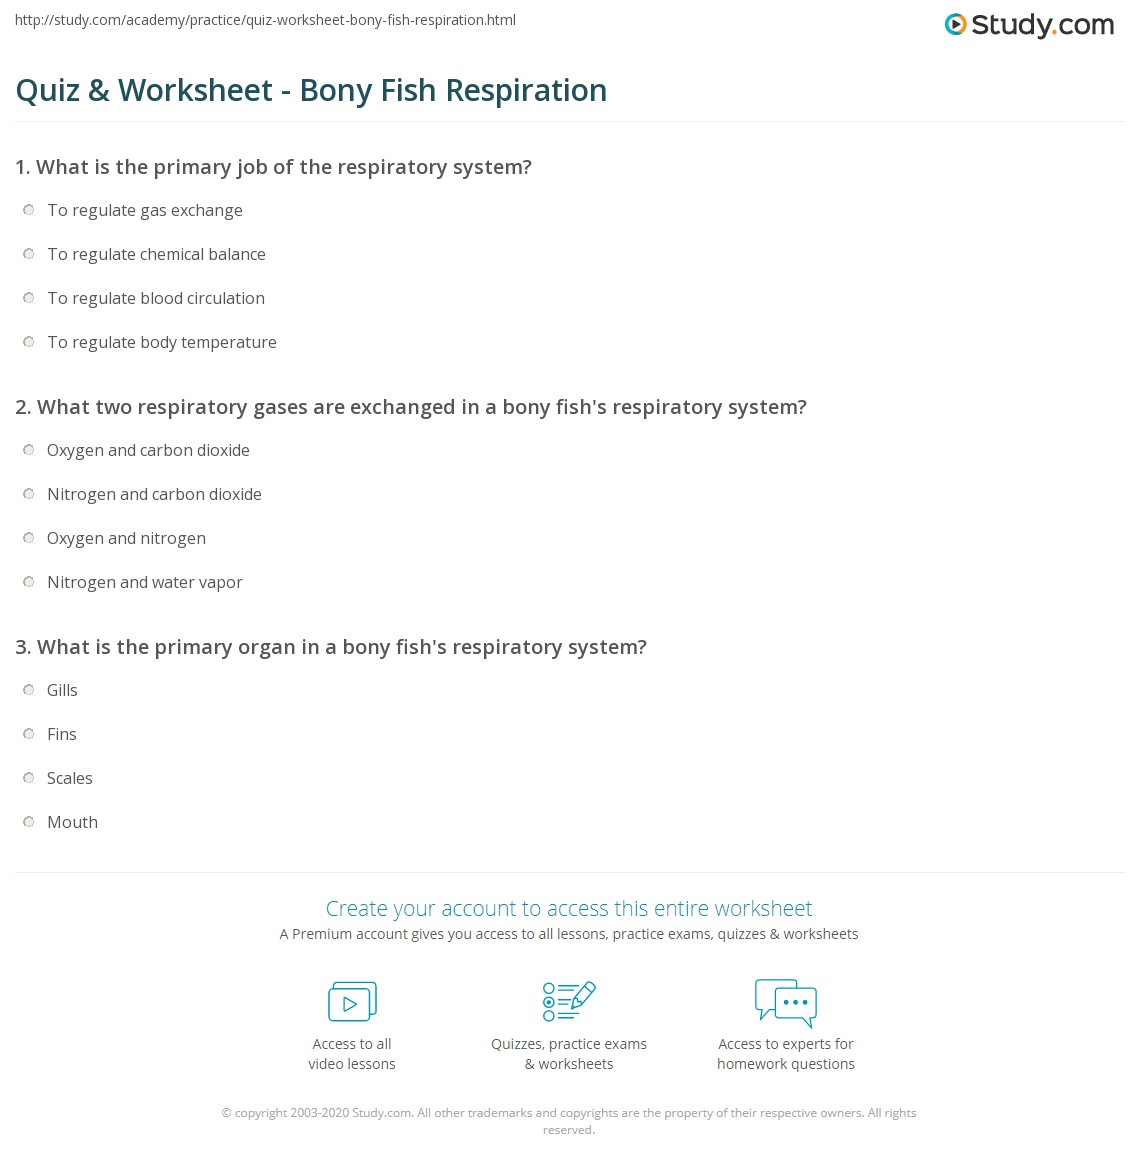 quiz worksheet bony fish respiration com print osteichthyes respiratory system worksheet